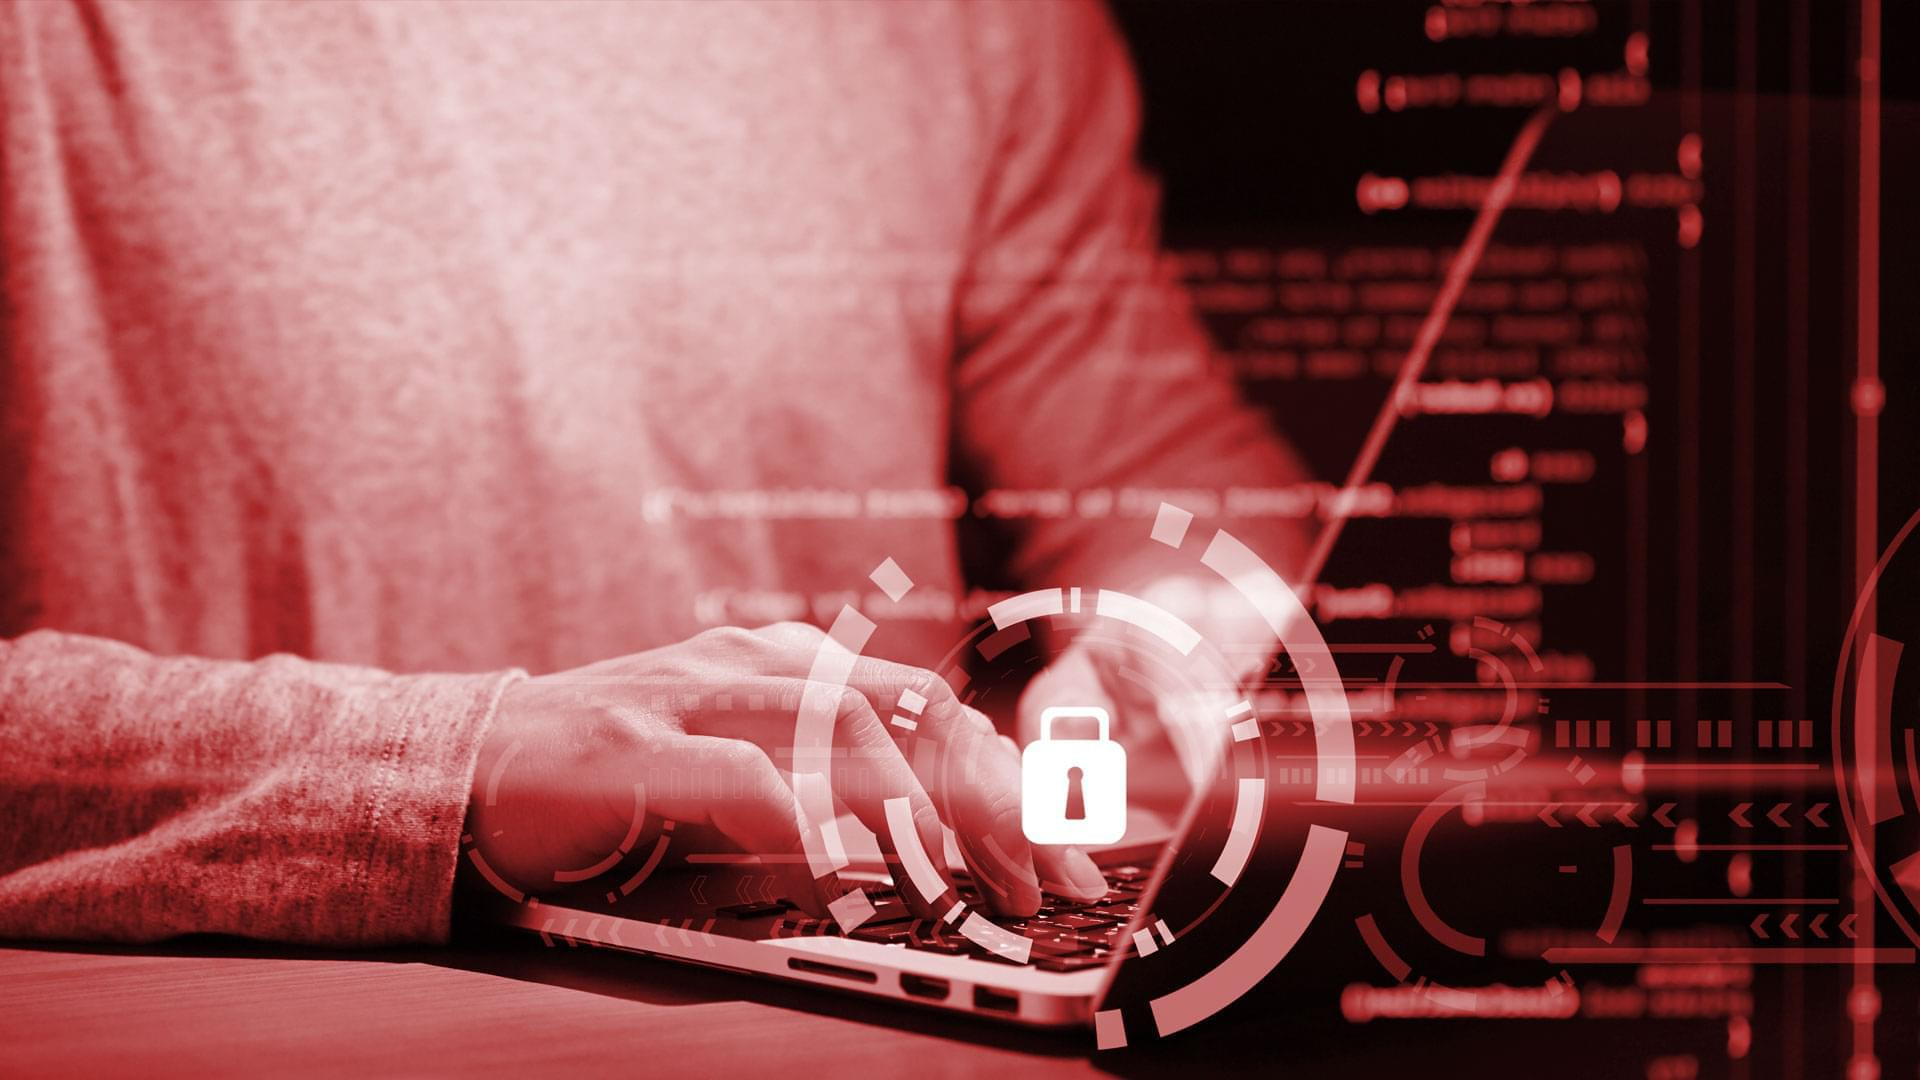 Data Breaches Cost Companies Millions. What Can You Do to Prevent Them?